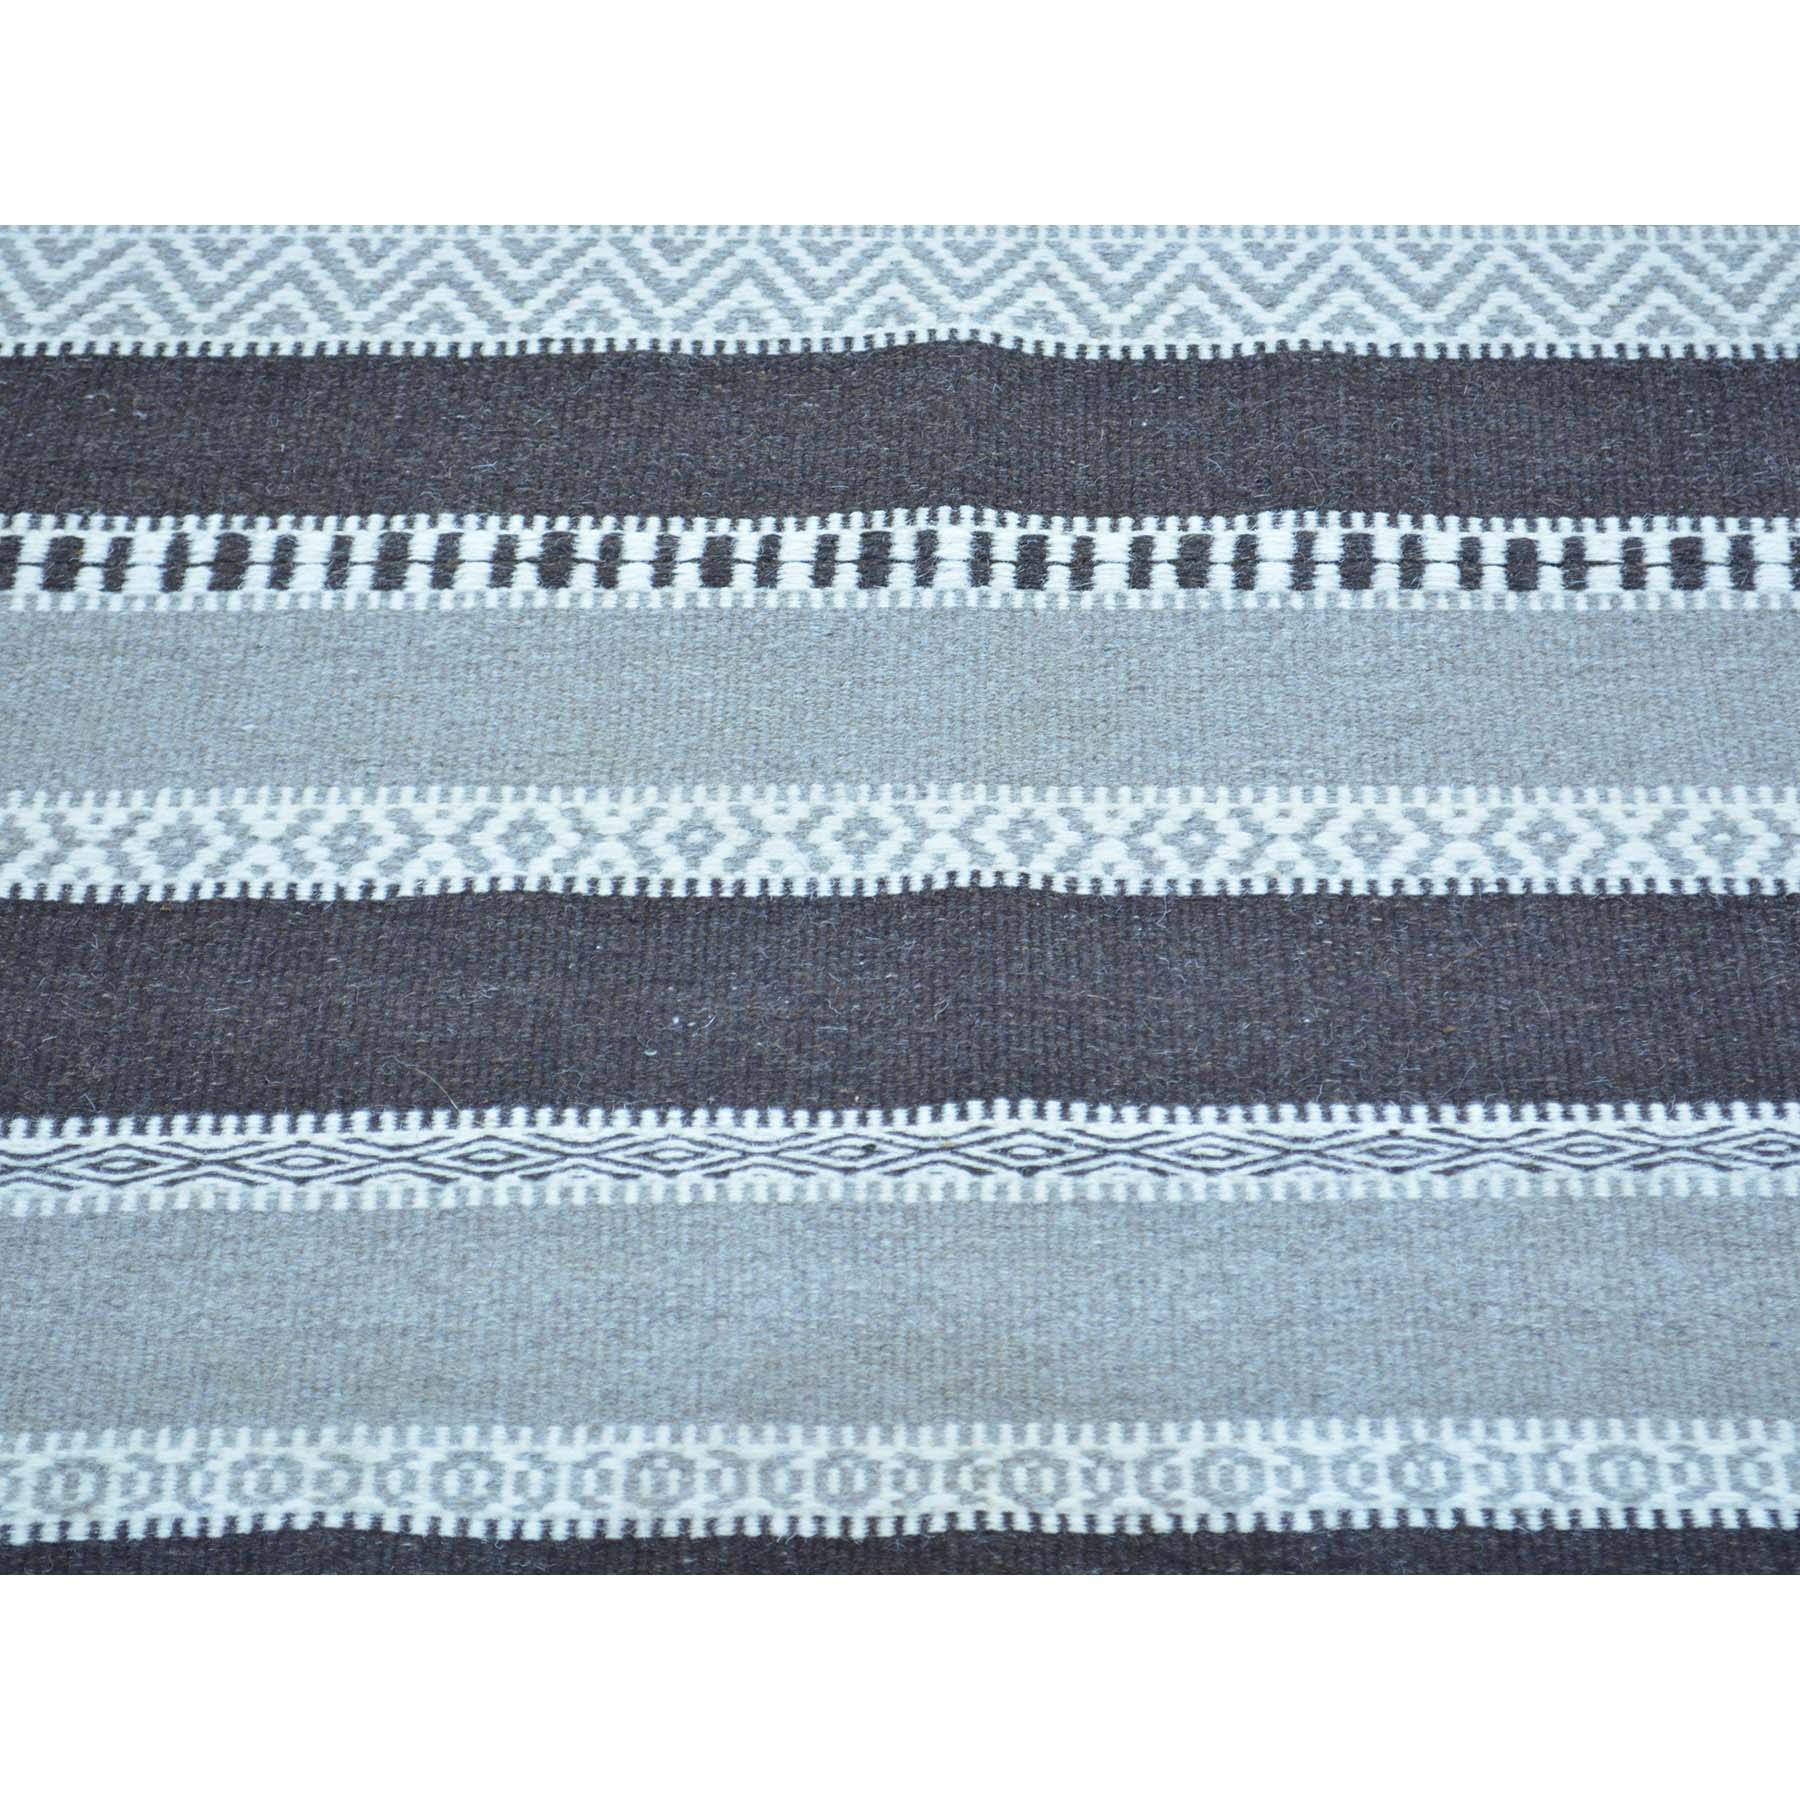 4-x6- Durie Kilim Striped Flat Weave Hand Woven Pure Wool Oriental Rug